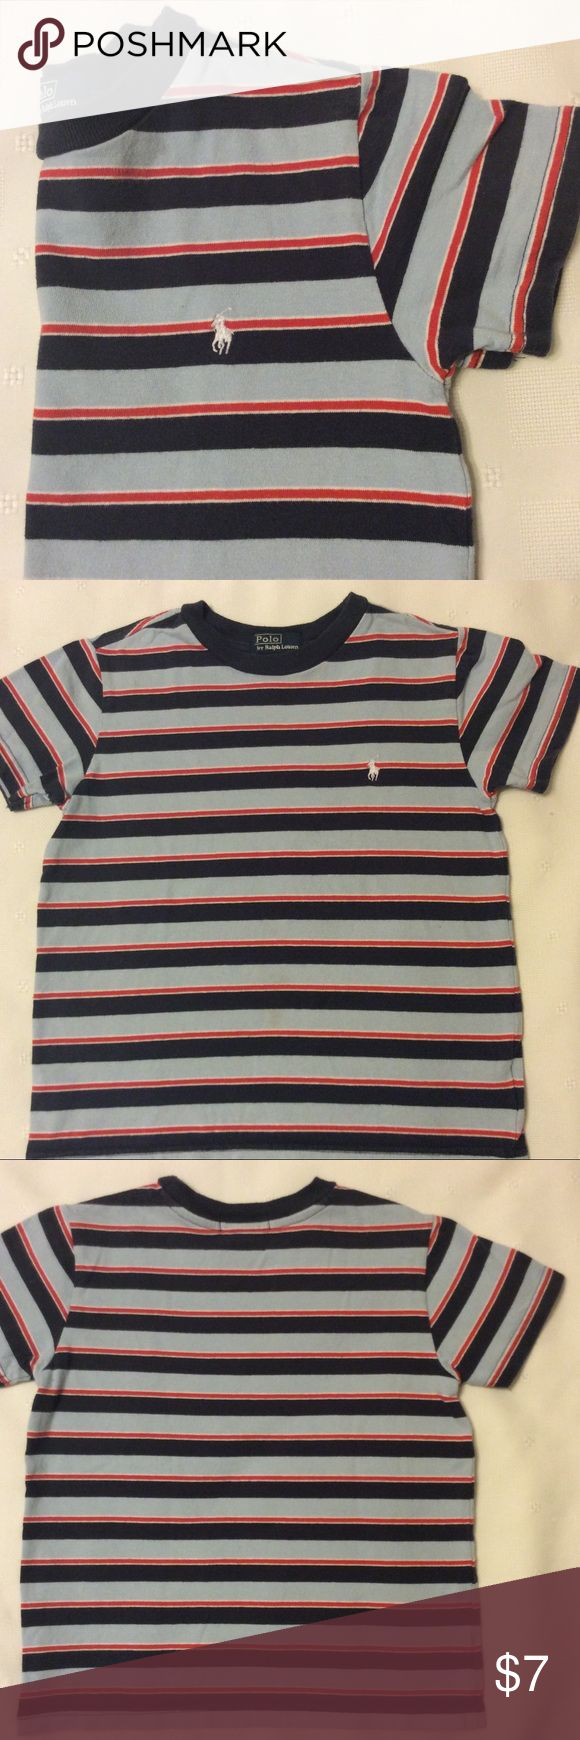 Boys Polo tee shirt.  $4 with bundle Navy, powder blue, red and white stripes. Polo by Ralph Lauren Shirts & Tops Tees - Short Sleeve